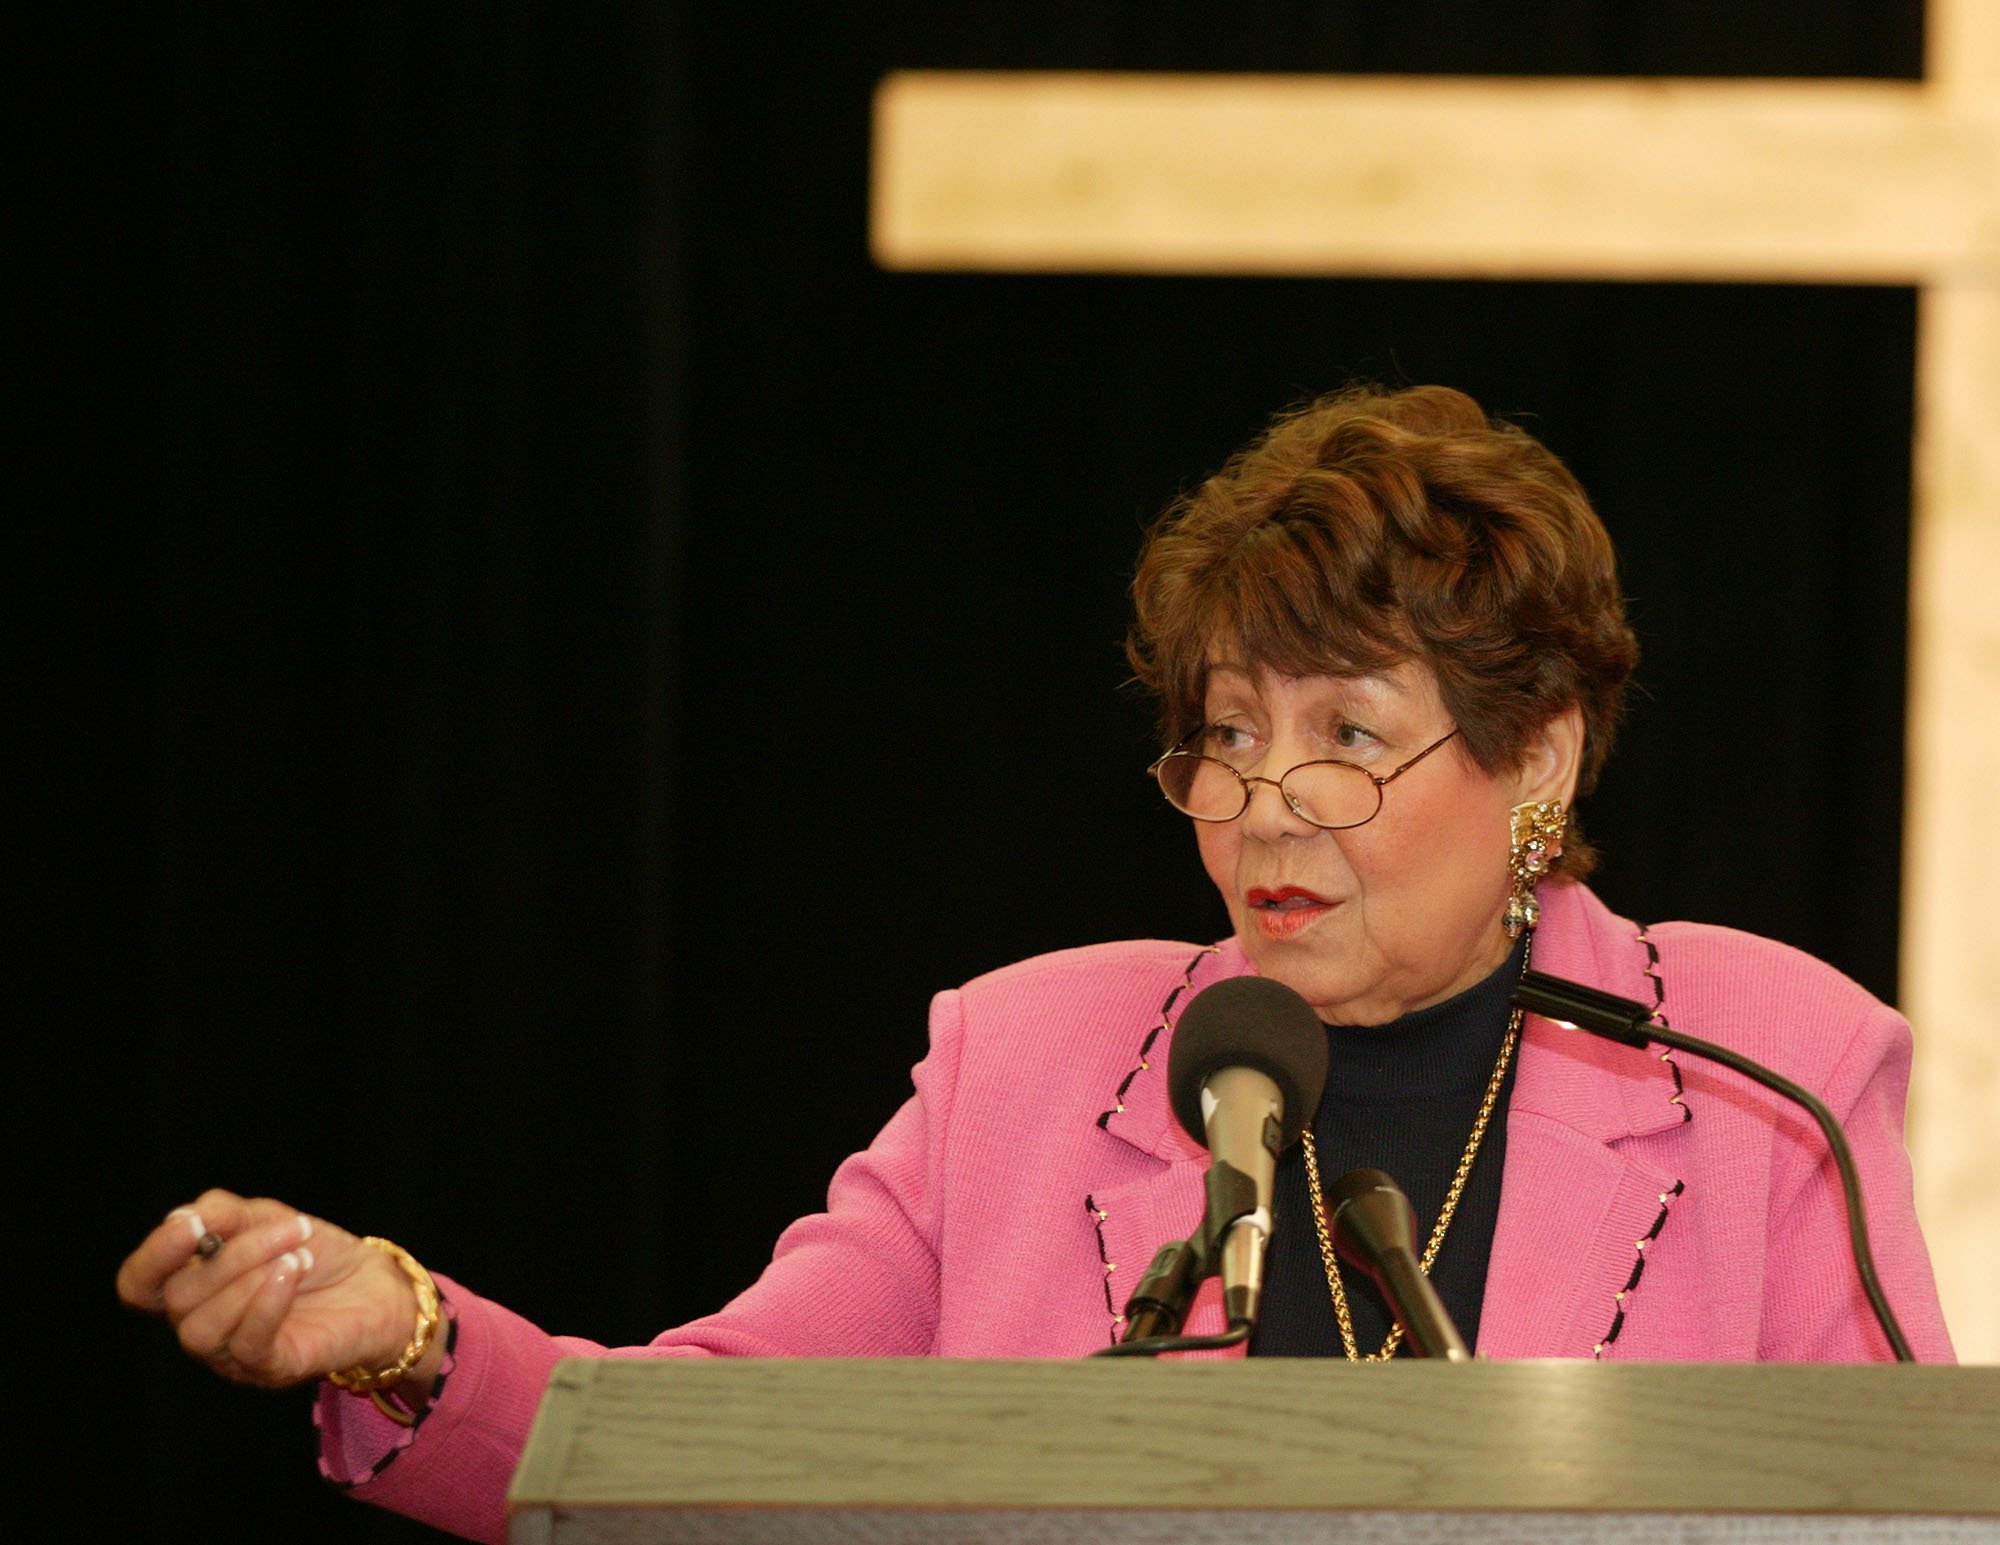 Evelyn G. Lowery, convener of the reunion, welcomes participants. A UMNS photo by Mike DuBose.